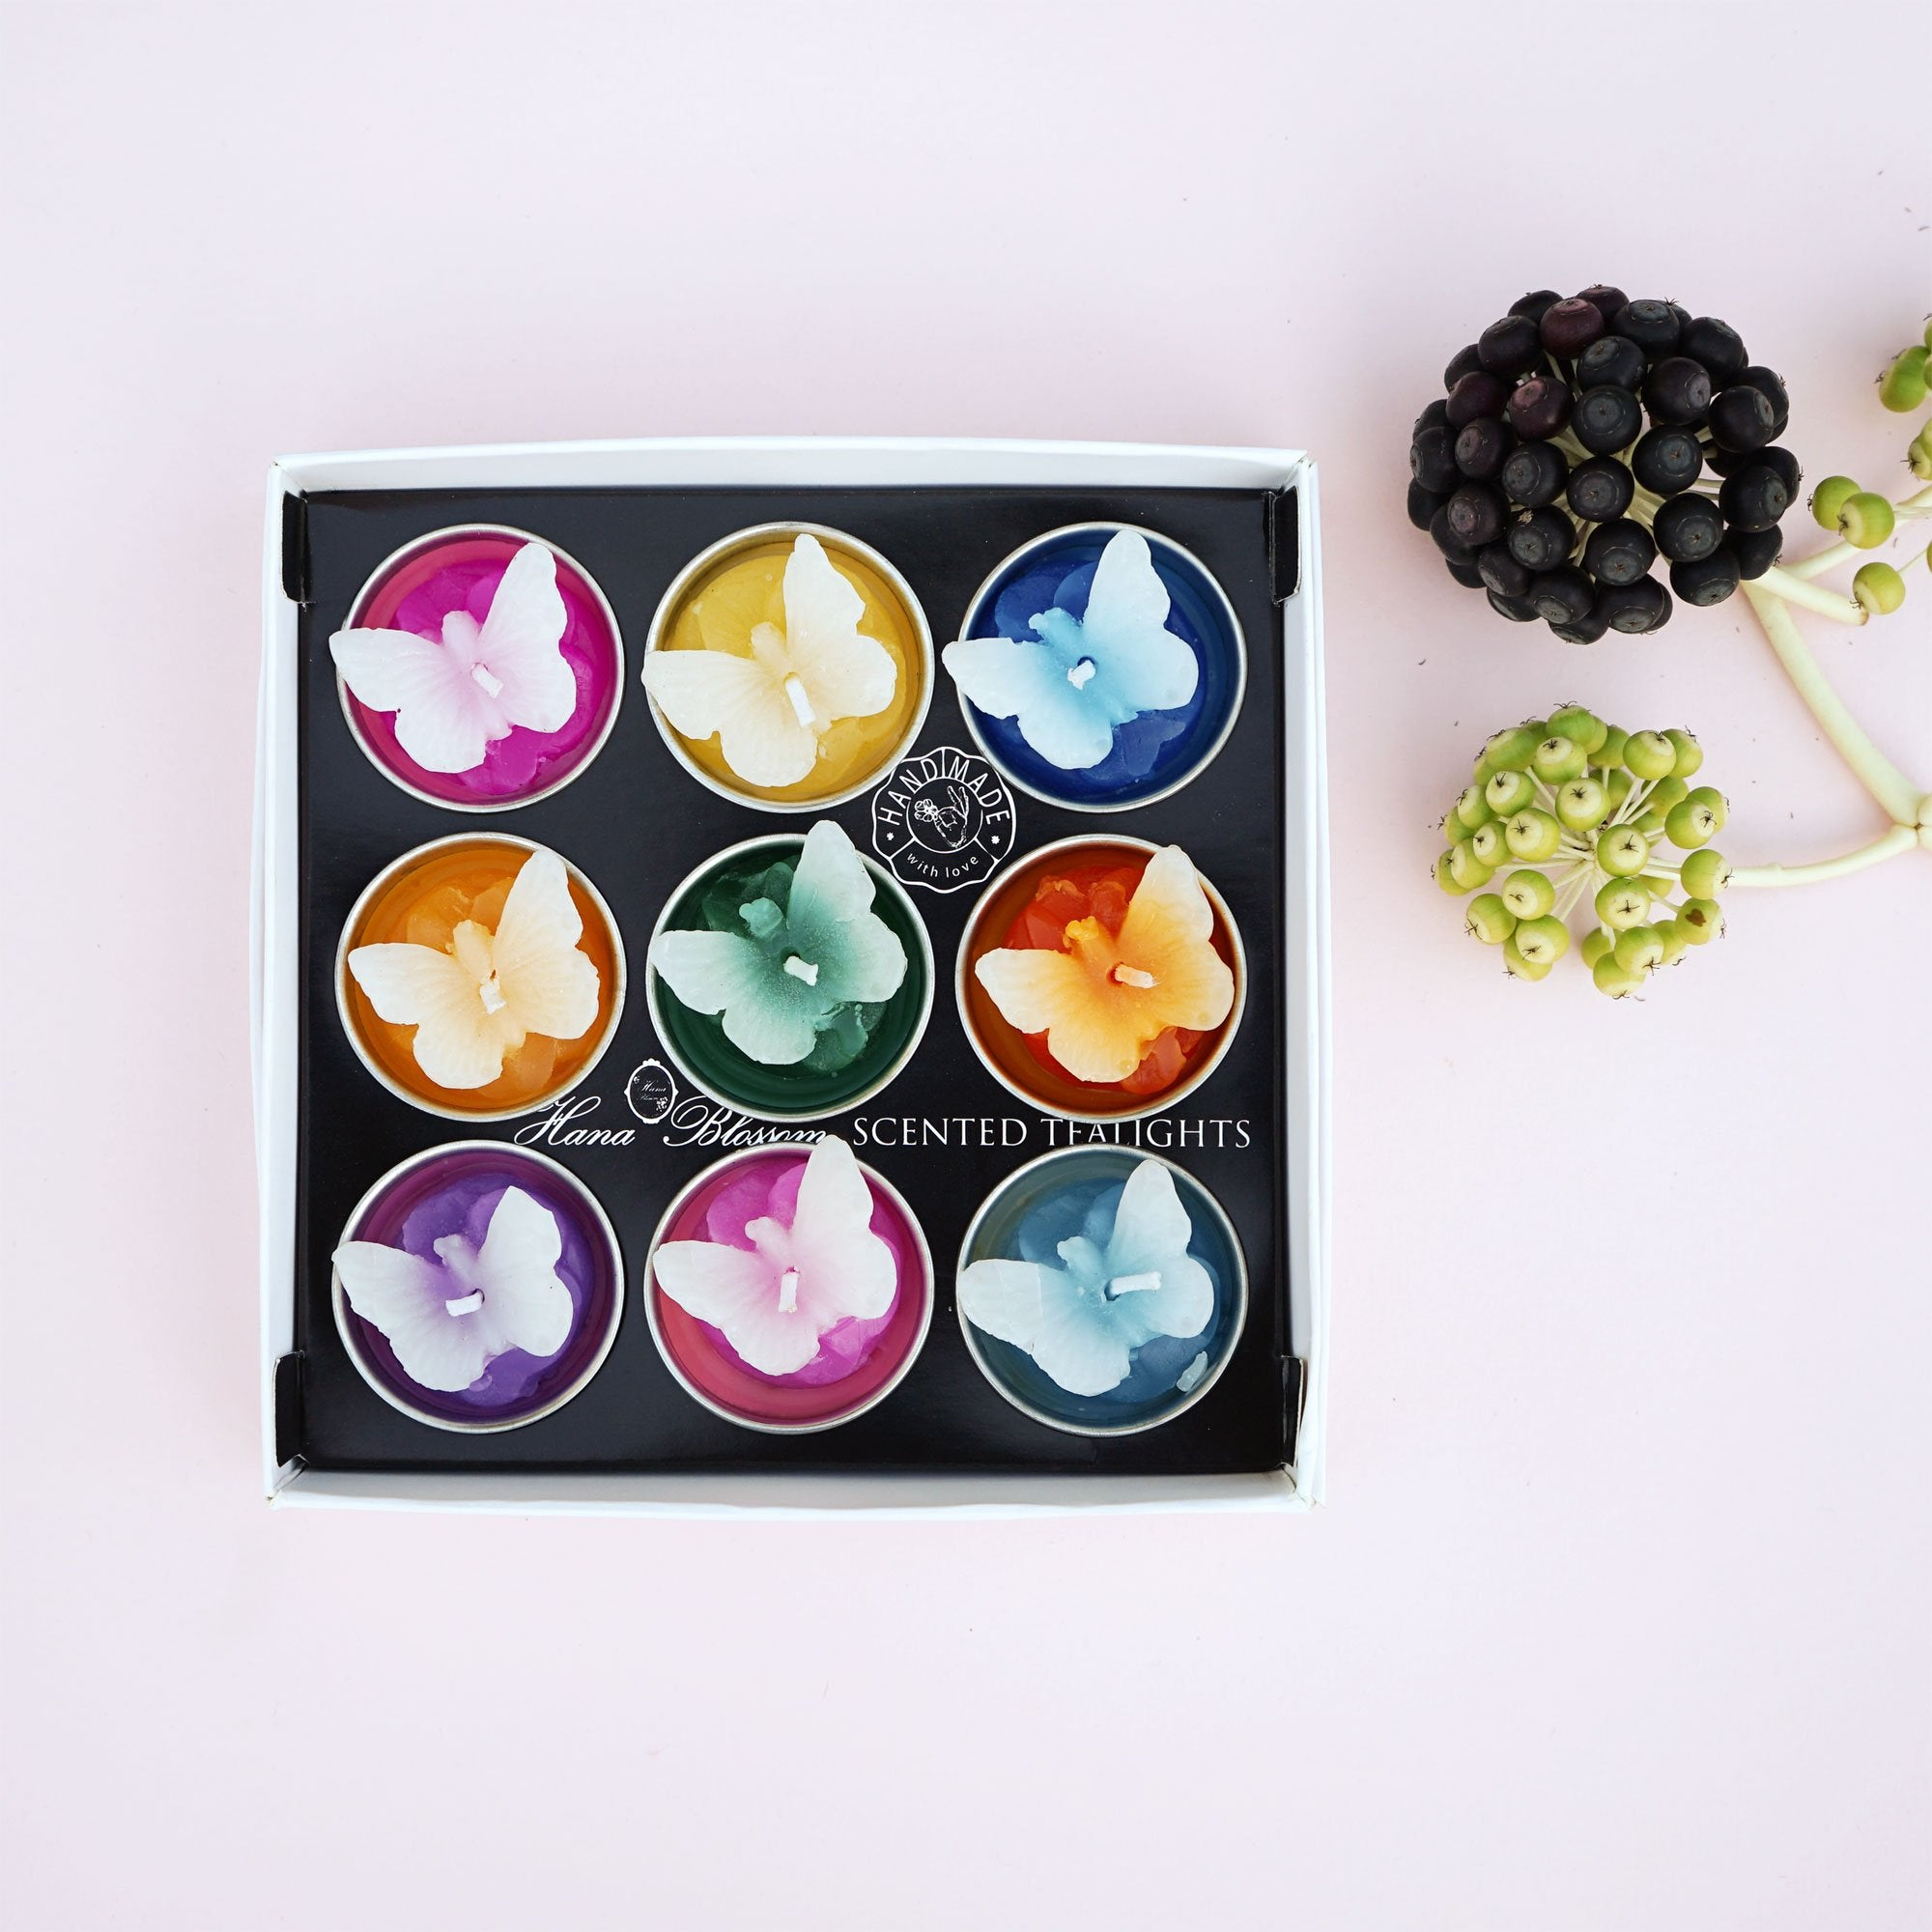 Handmade fair trade assorted butterfly scented tealights. A perfect gift for her.